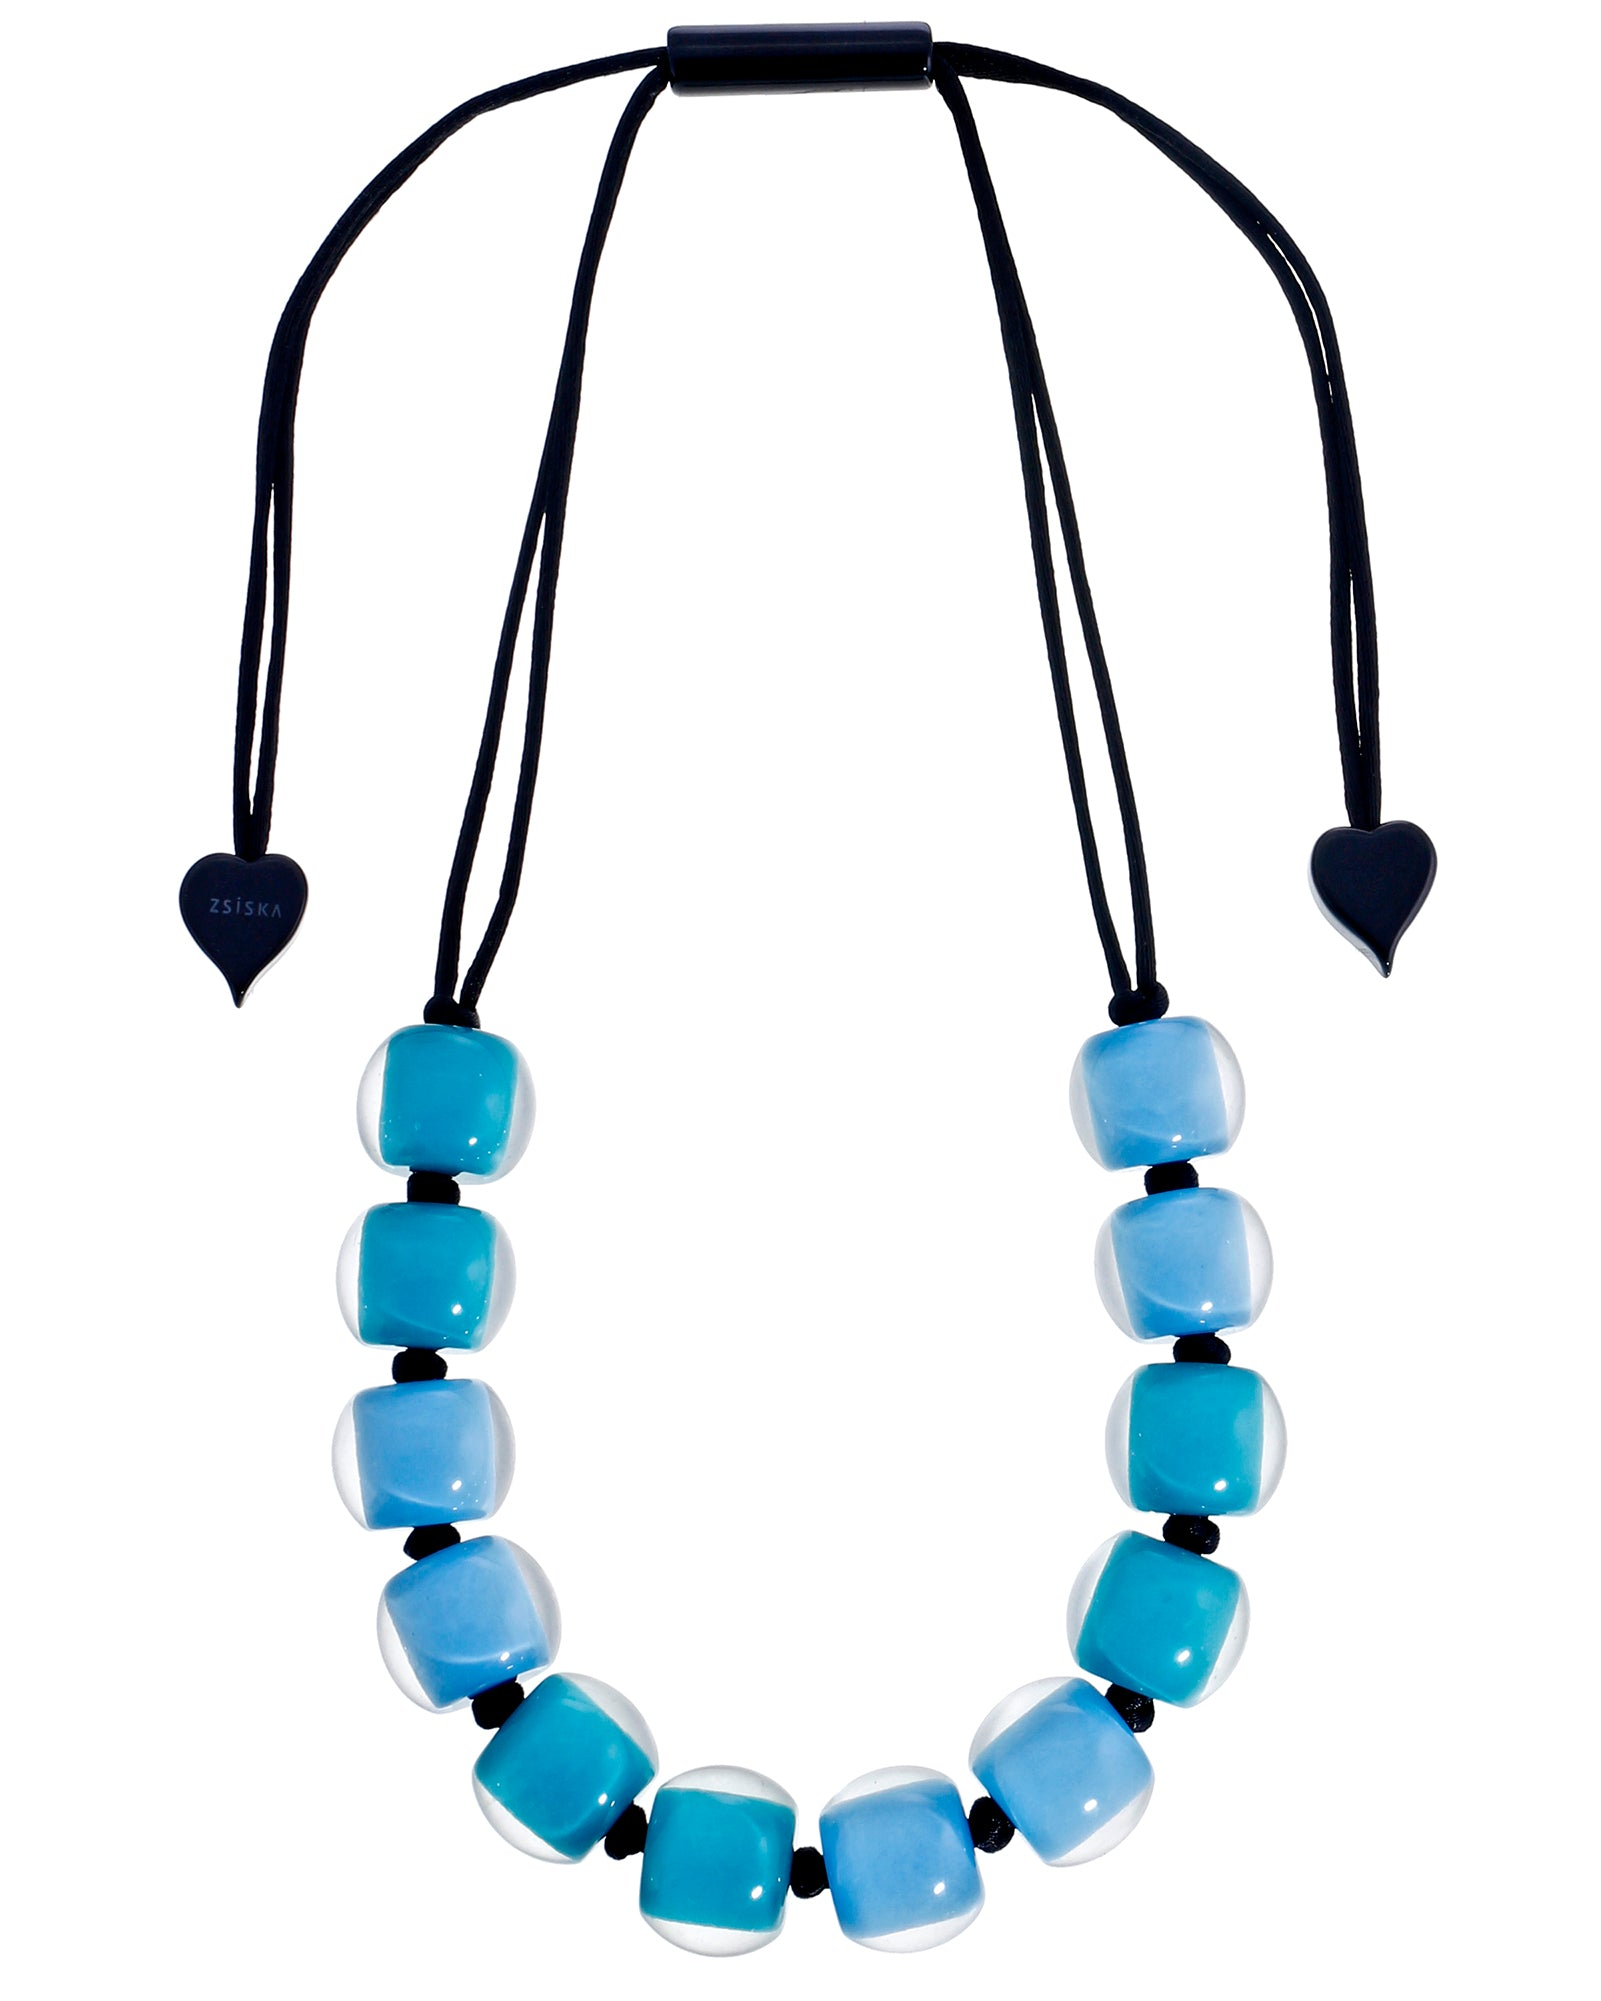 Zsiska 12 Round Beads Adjustable Necklace